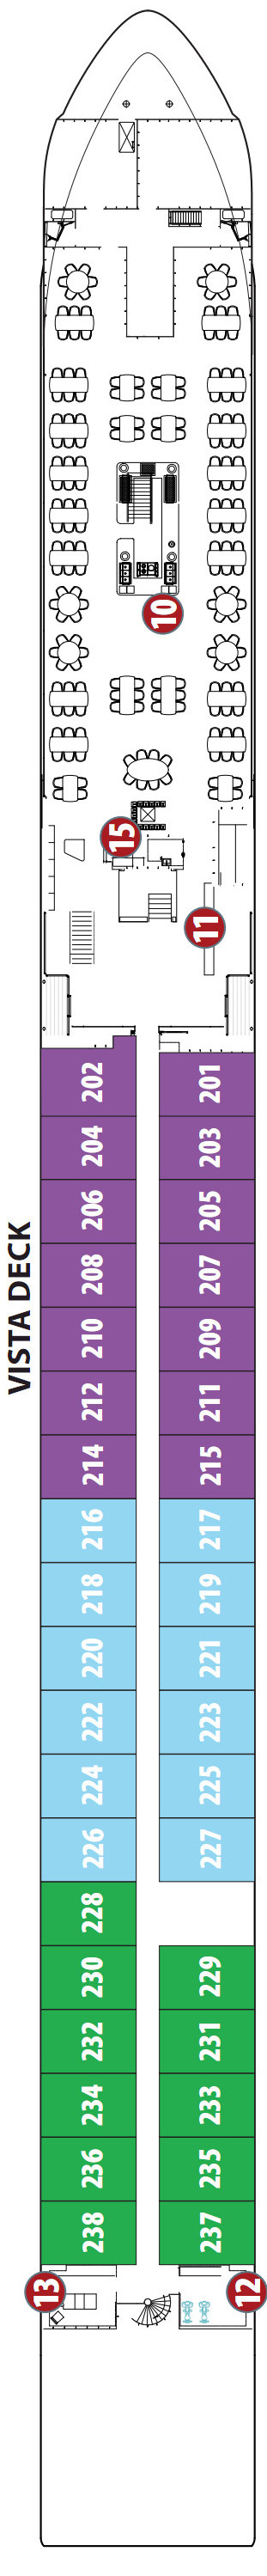 Emerald Star Ship Vista Deck layout